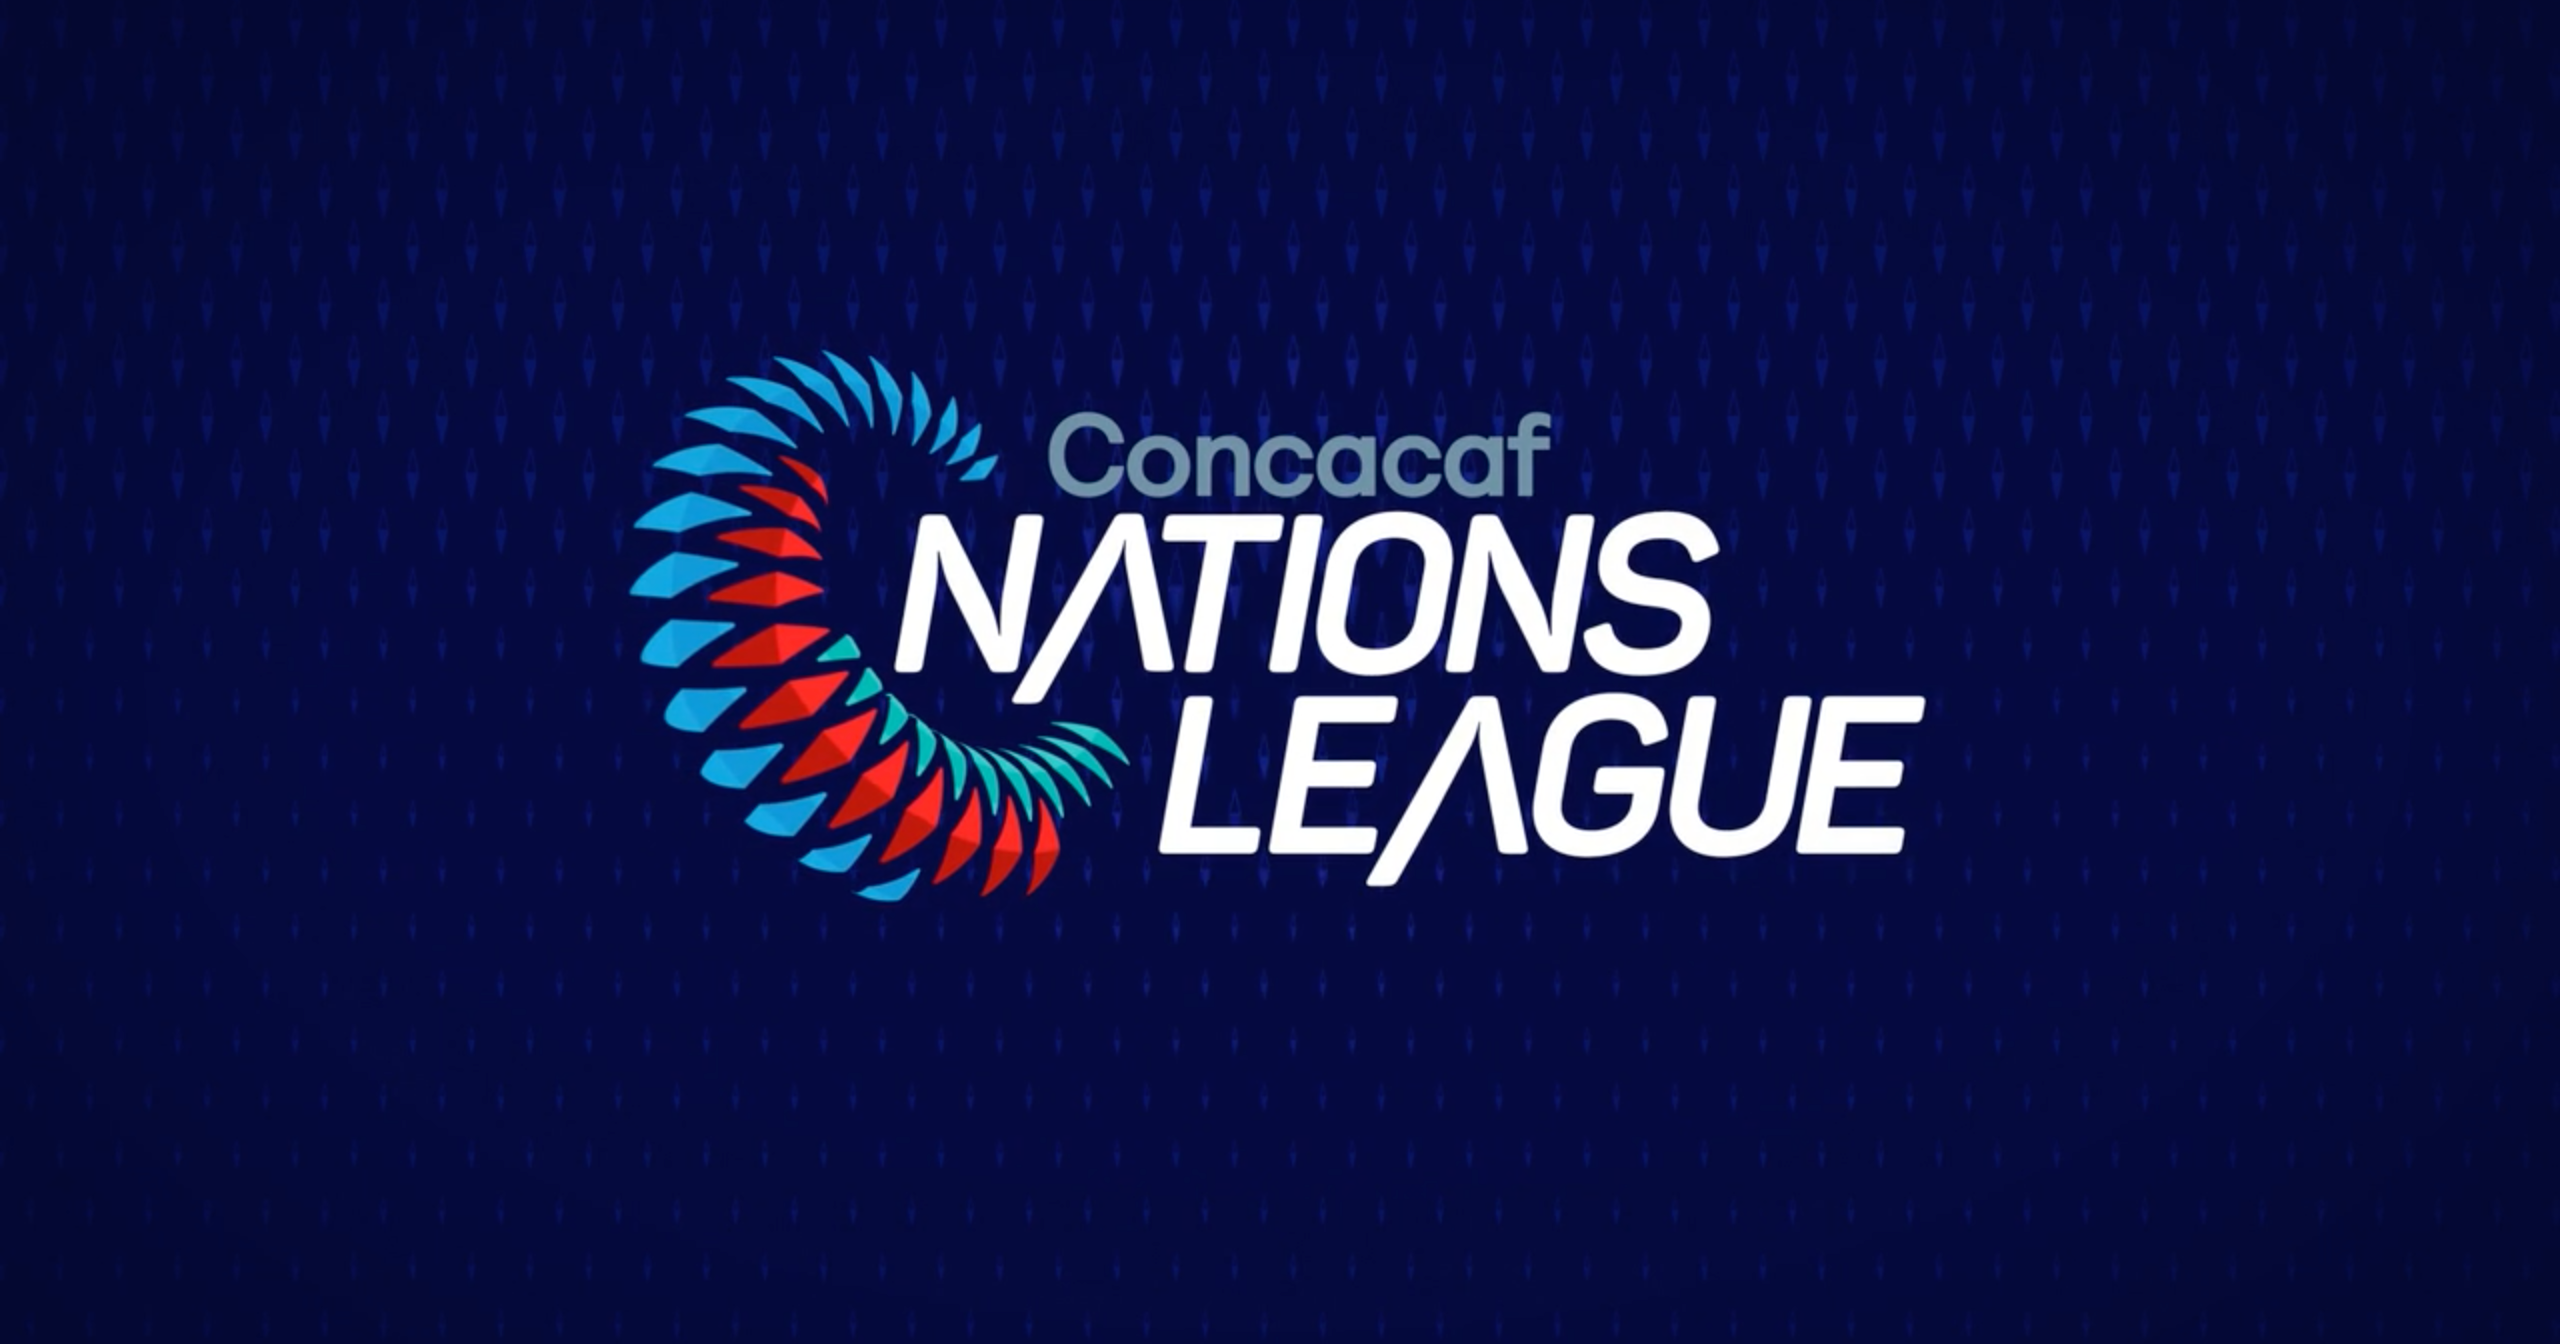 Concacaf Nations League Officially Launched